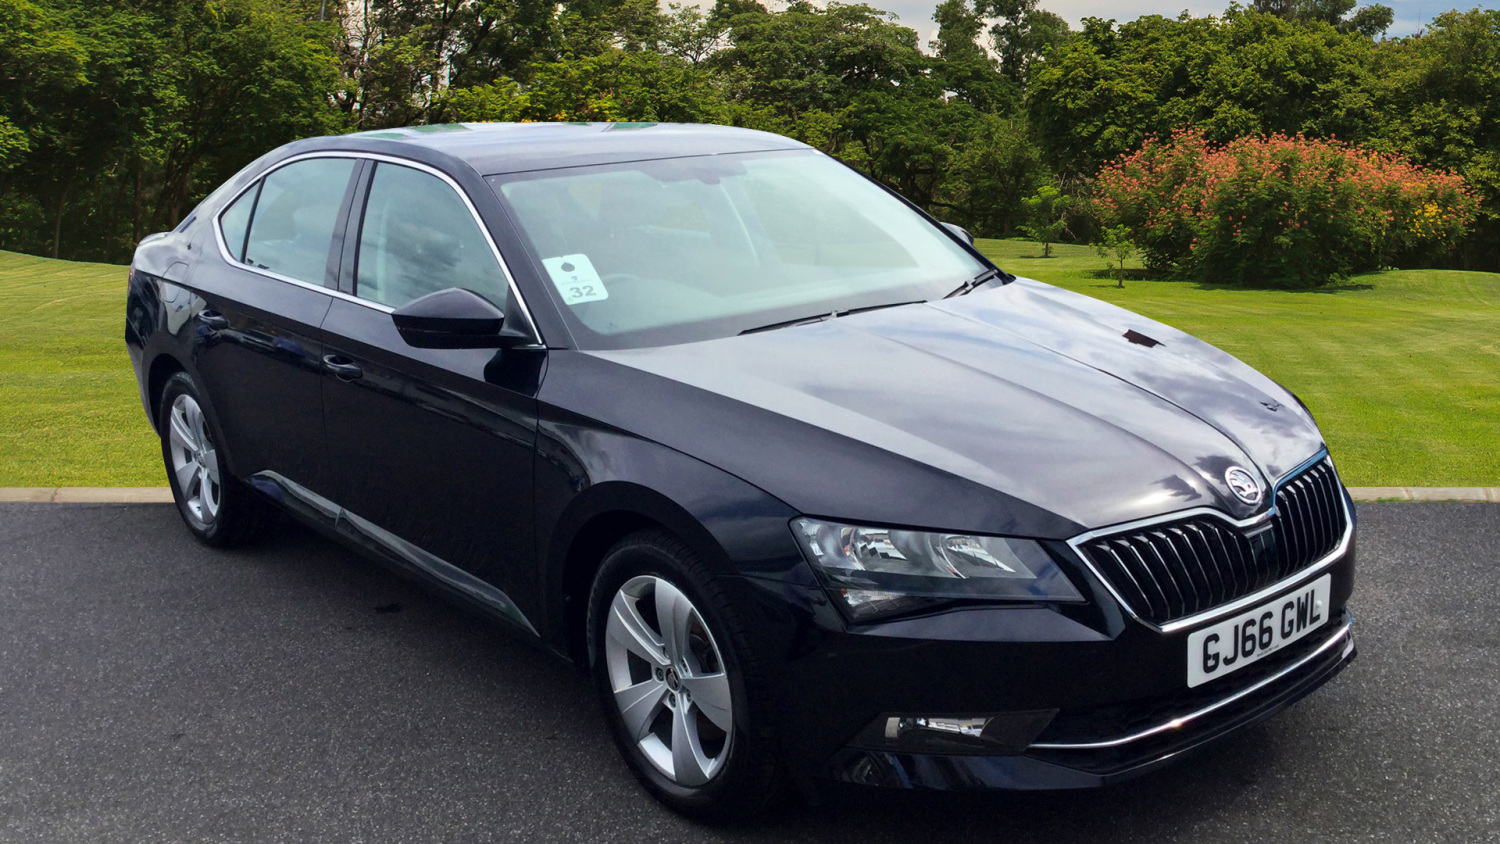 used skoda superb 1 4 tsi 150 se 5dr petrol hatchback for sale in scotland macklin motors. Black Bedroom Furniture Sets. Home Design Ideas